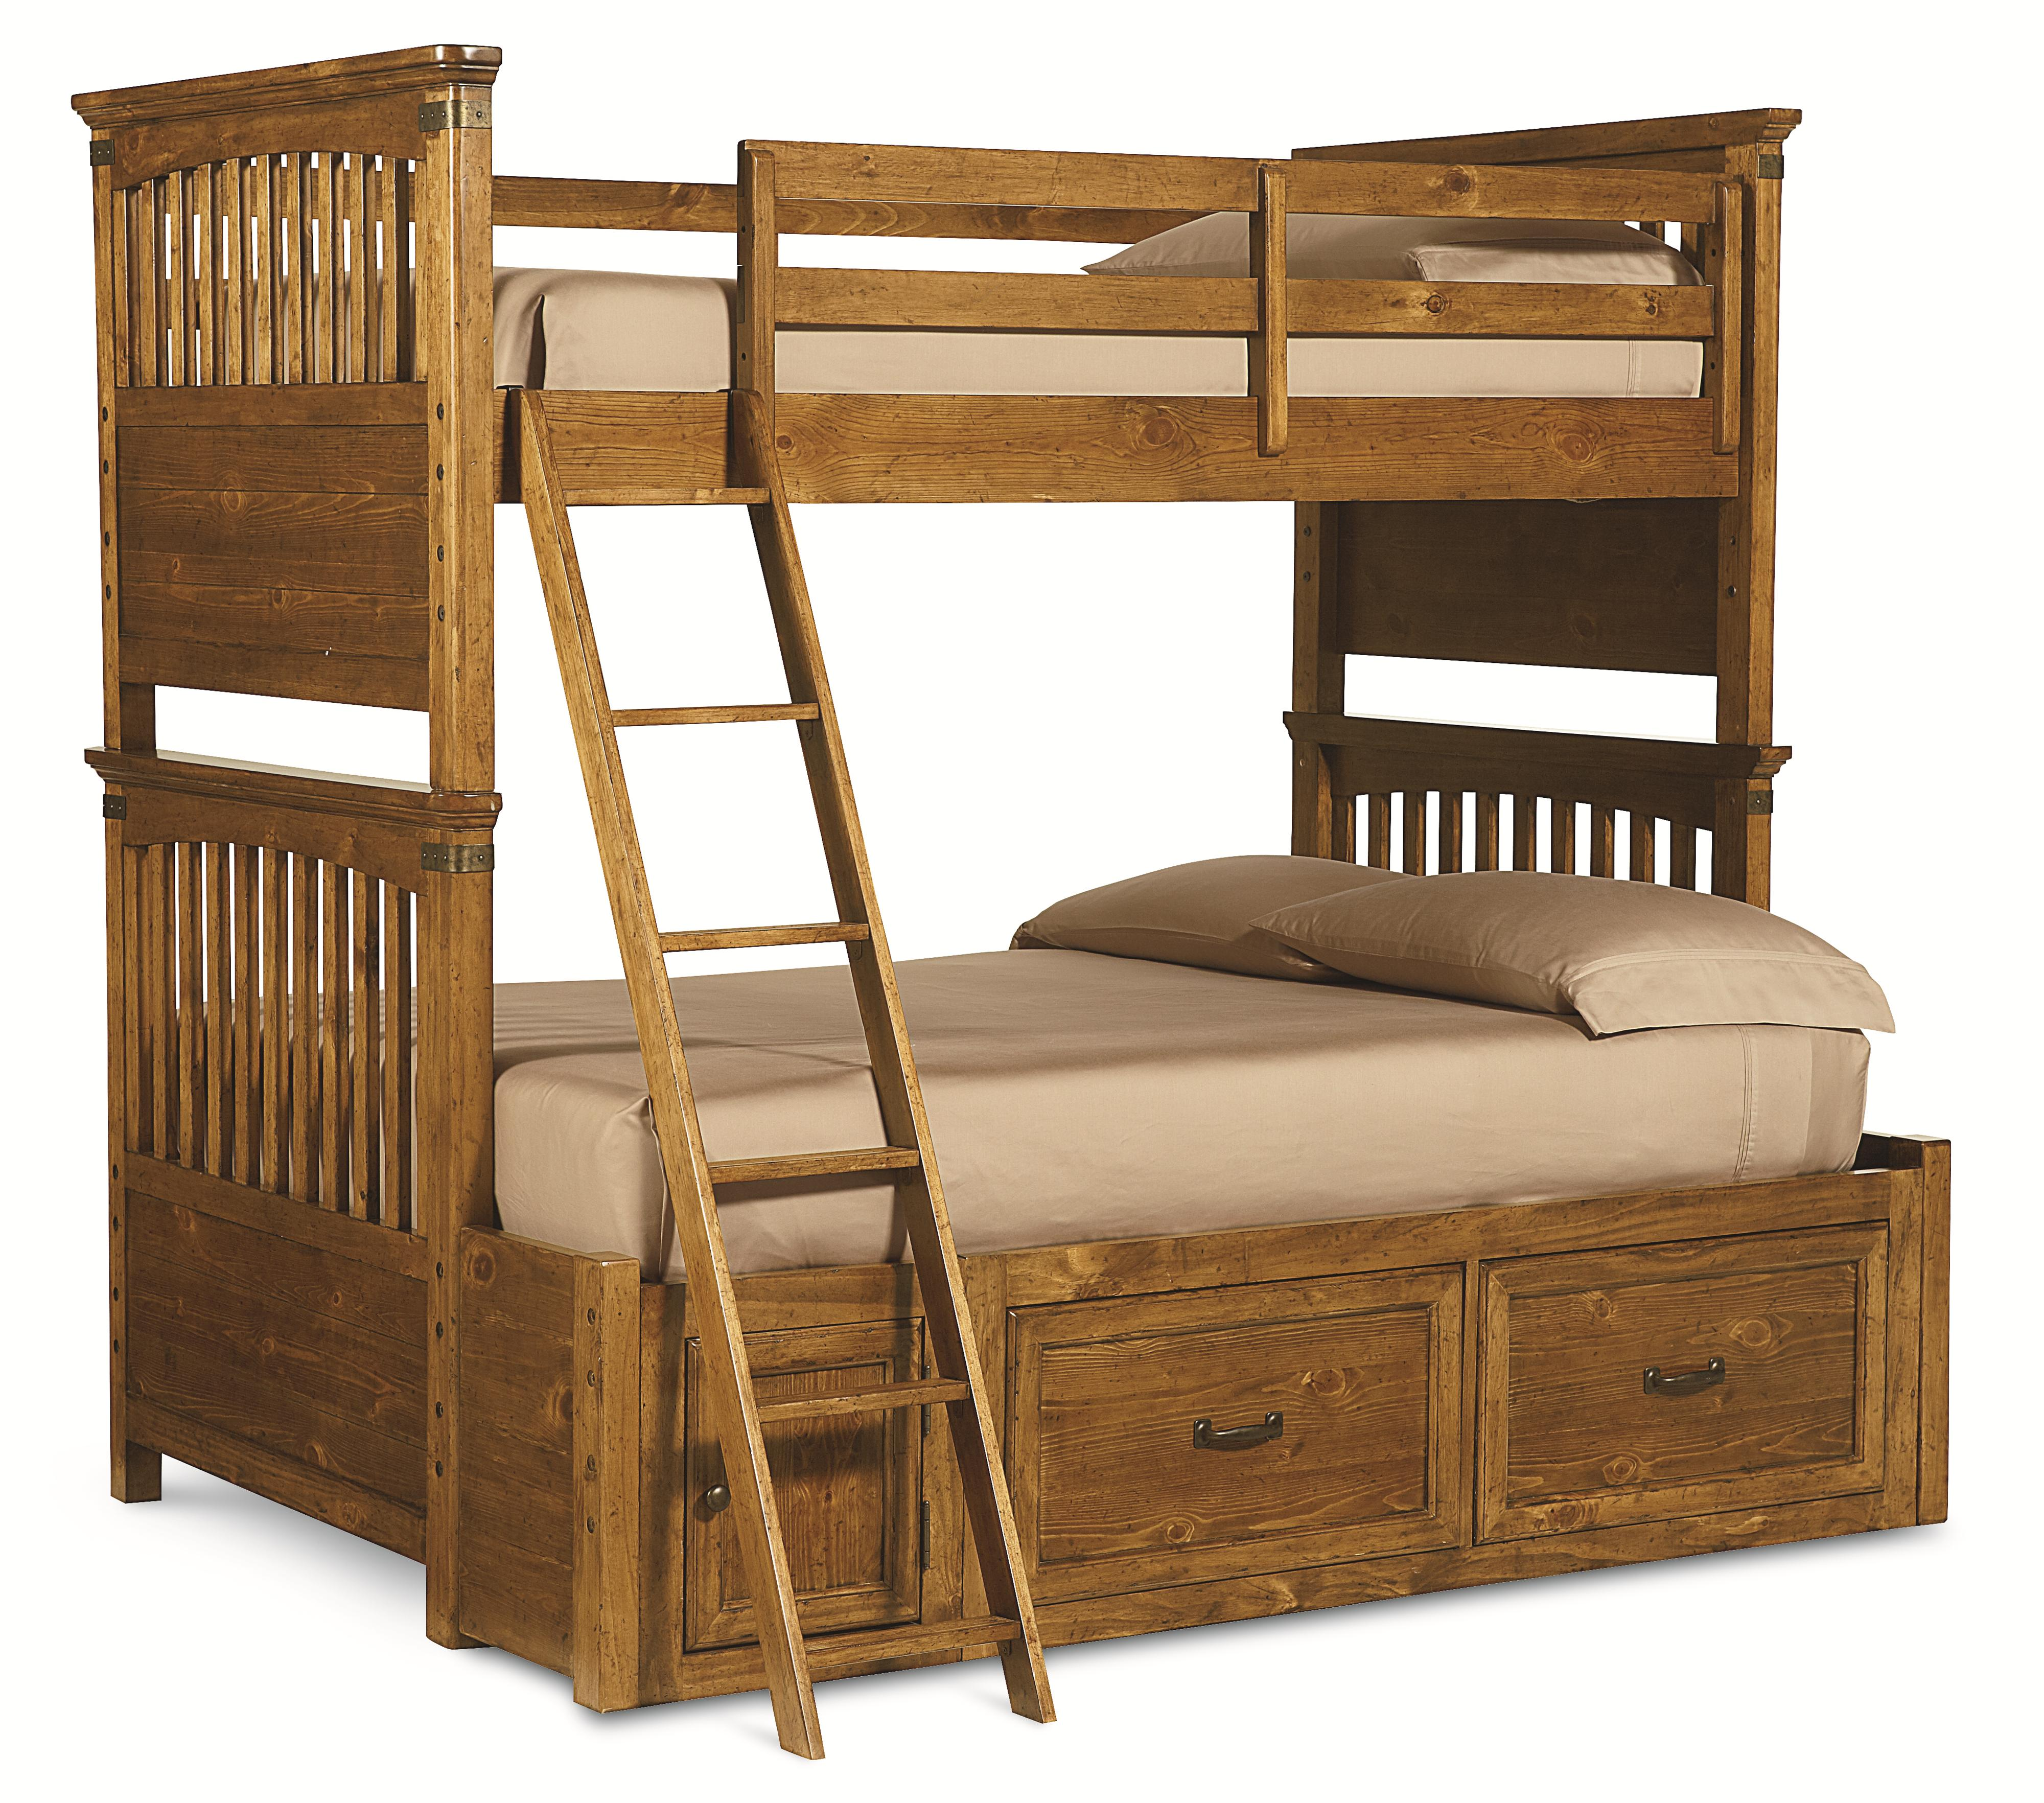 Legacy Classic Kids Bryce Canyon Twin Over Full Bunk Bed with Storage - Item Number: 3900-8140K+9300